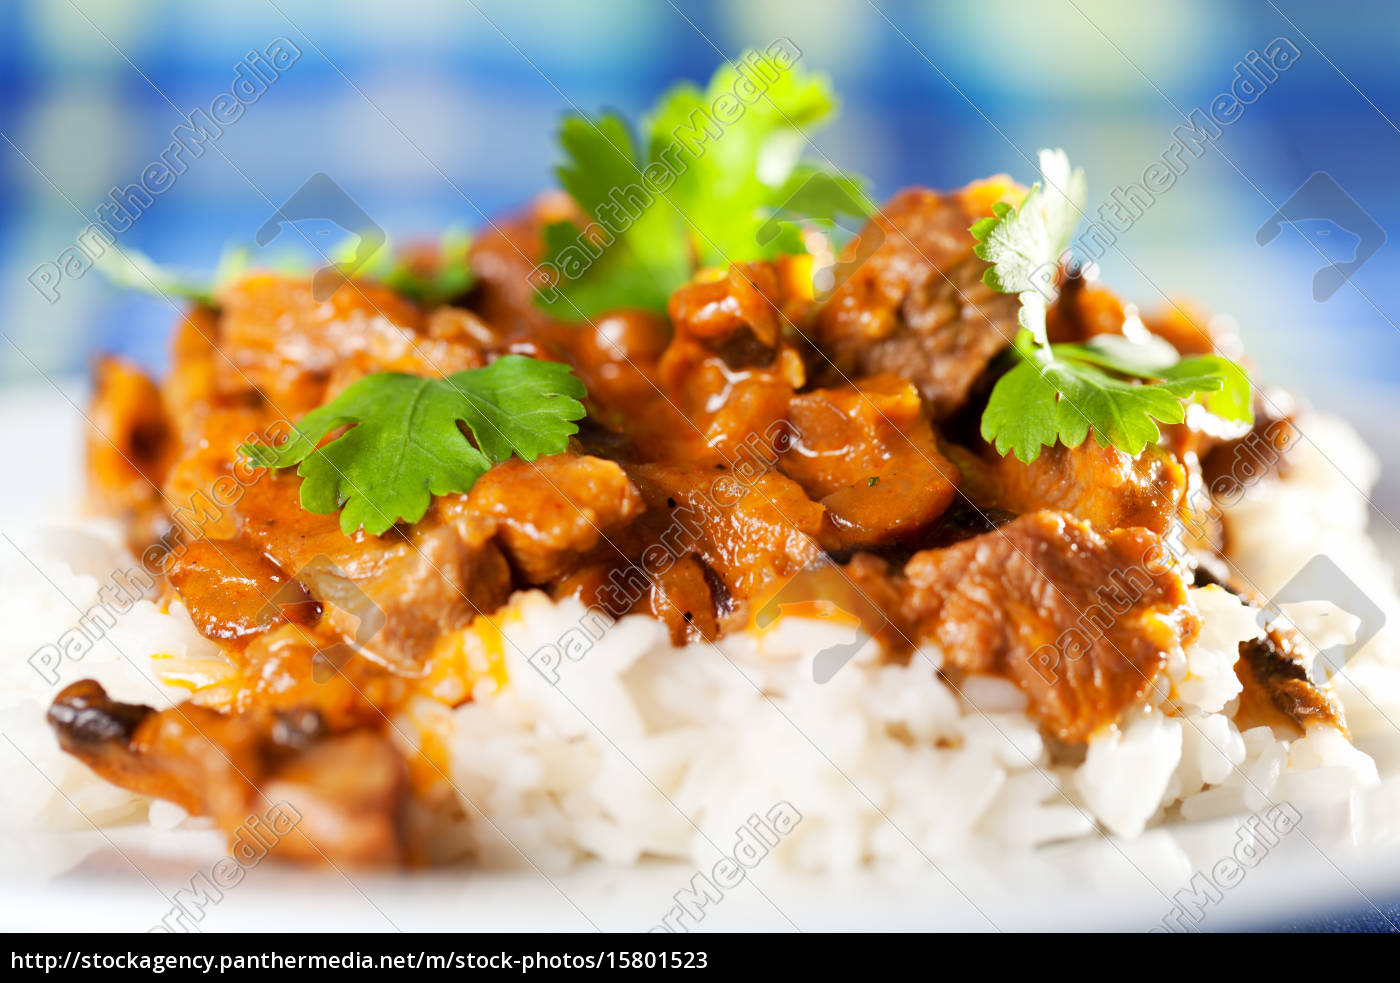 pork, curry, with, rice, pork, curry, with - 15801523